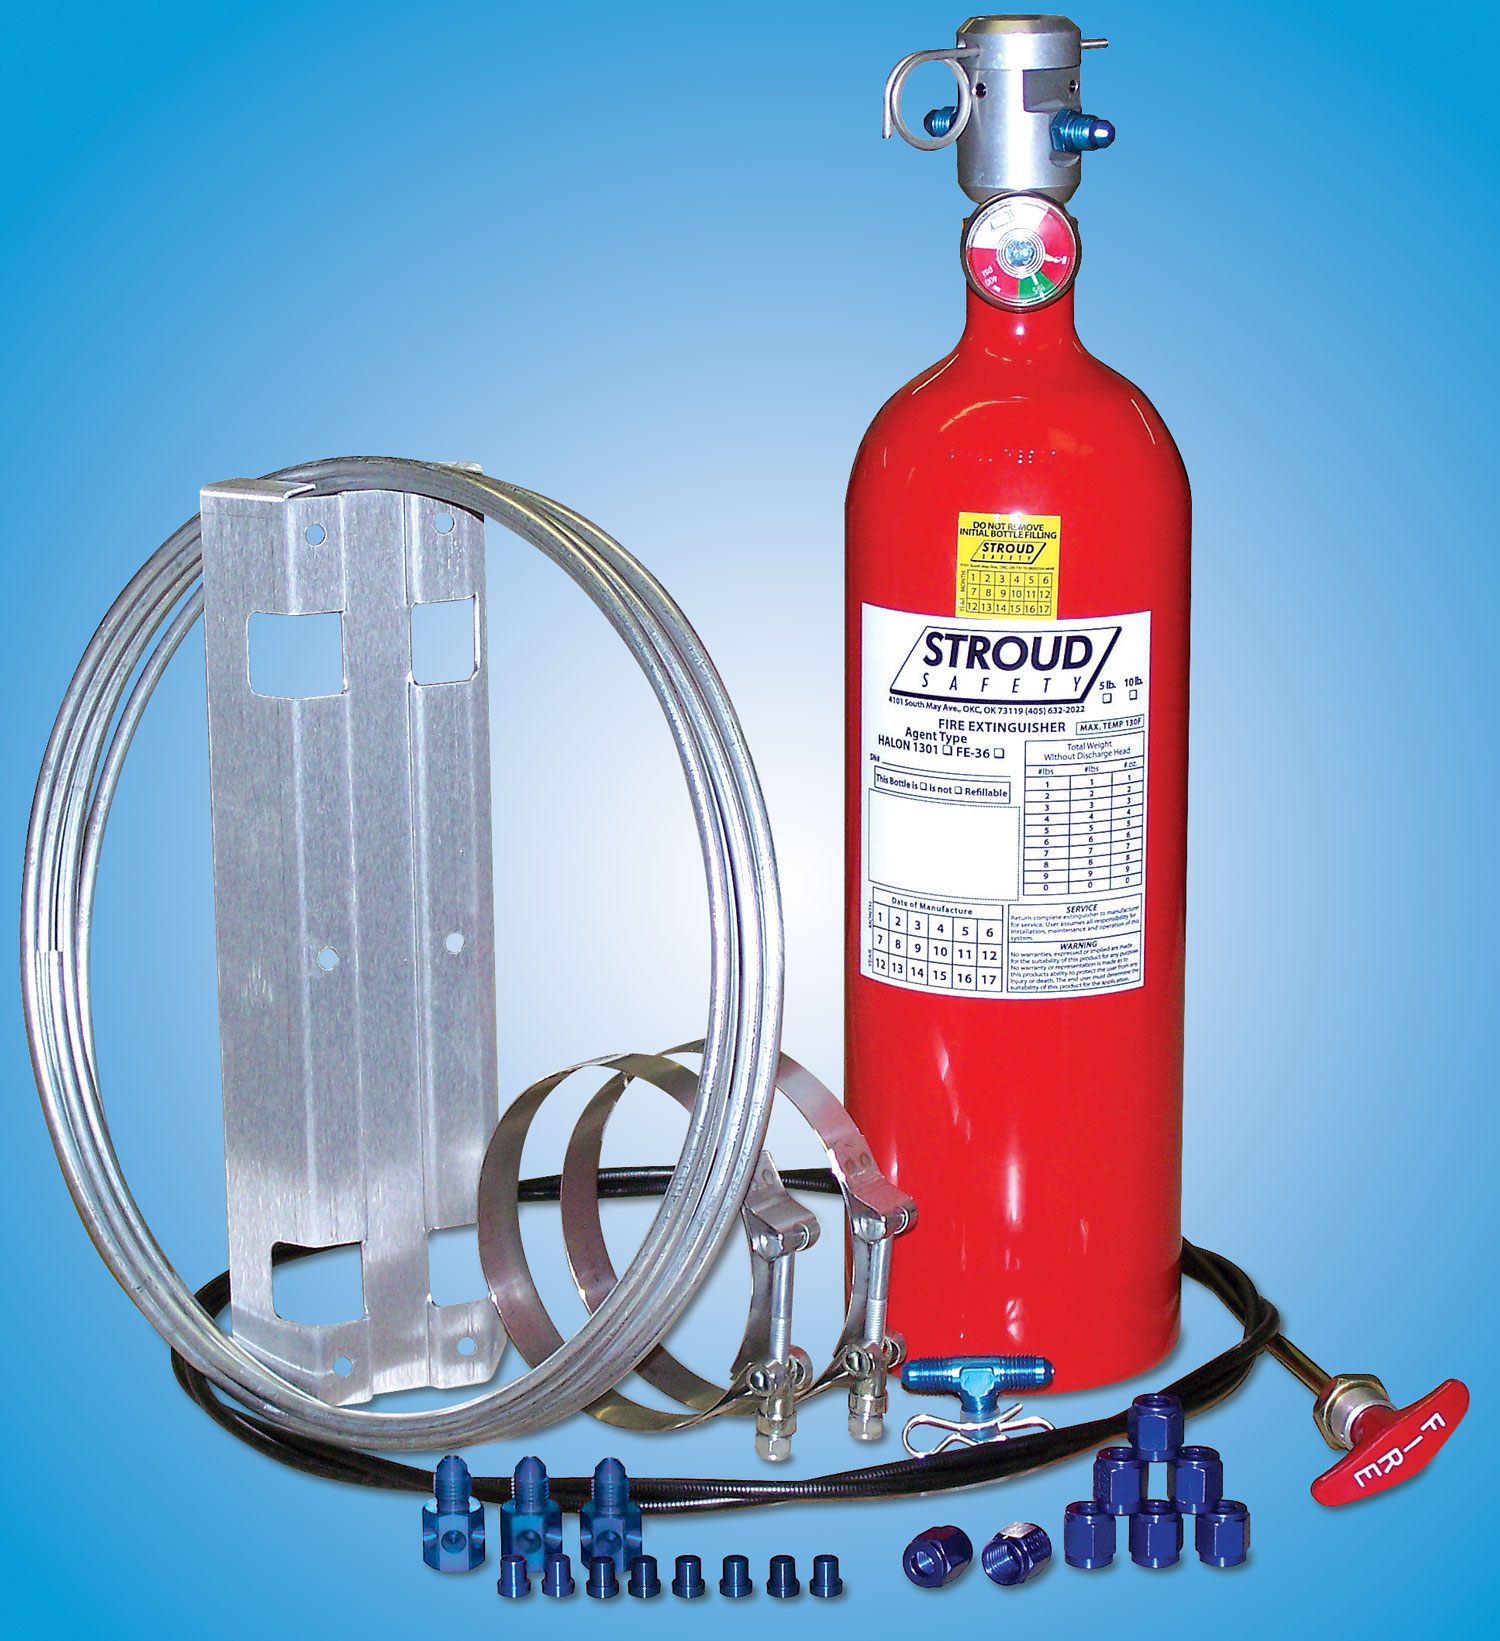 Fire Suppression Bottle and Components